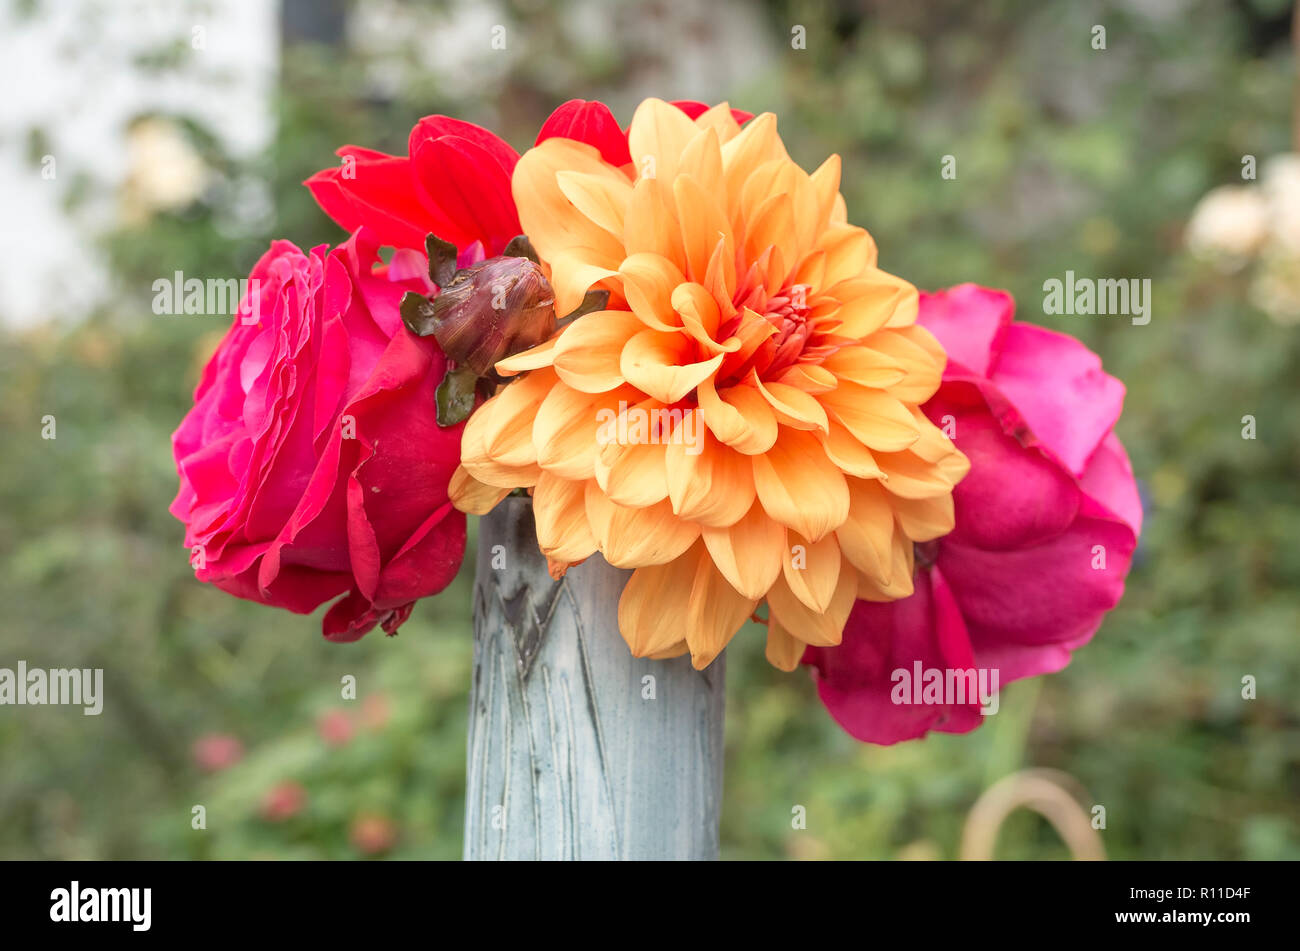 Cut-flowers Dahlia and Roses in a stem vase in UK - Stock Image